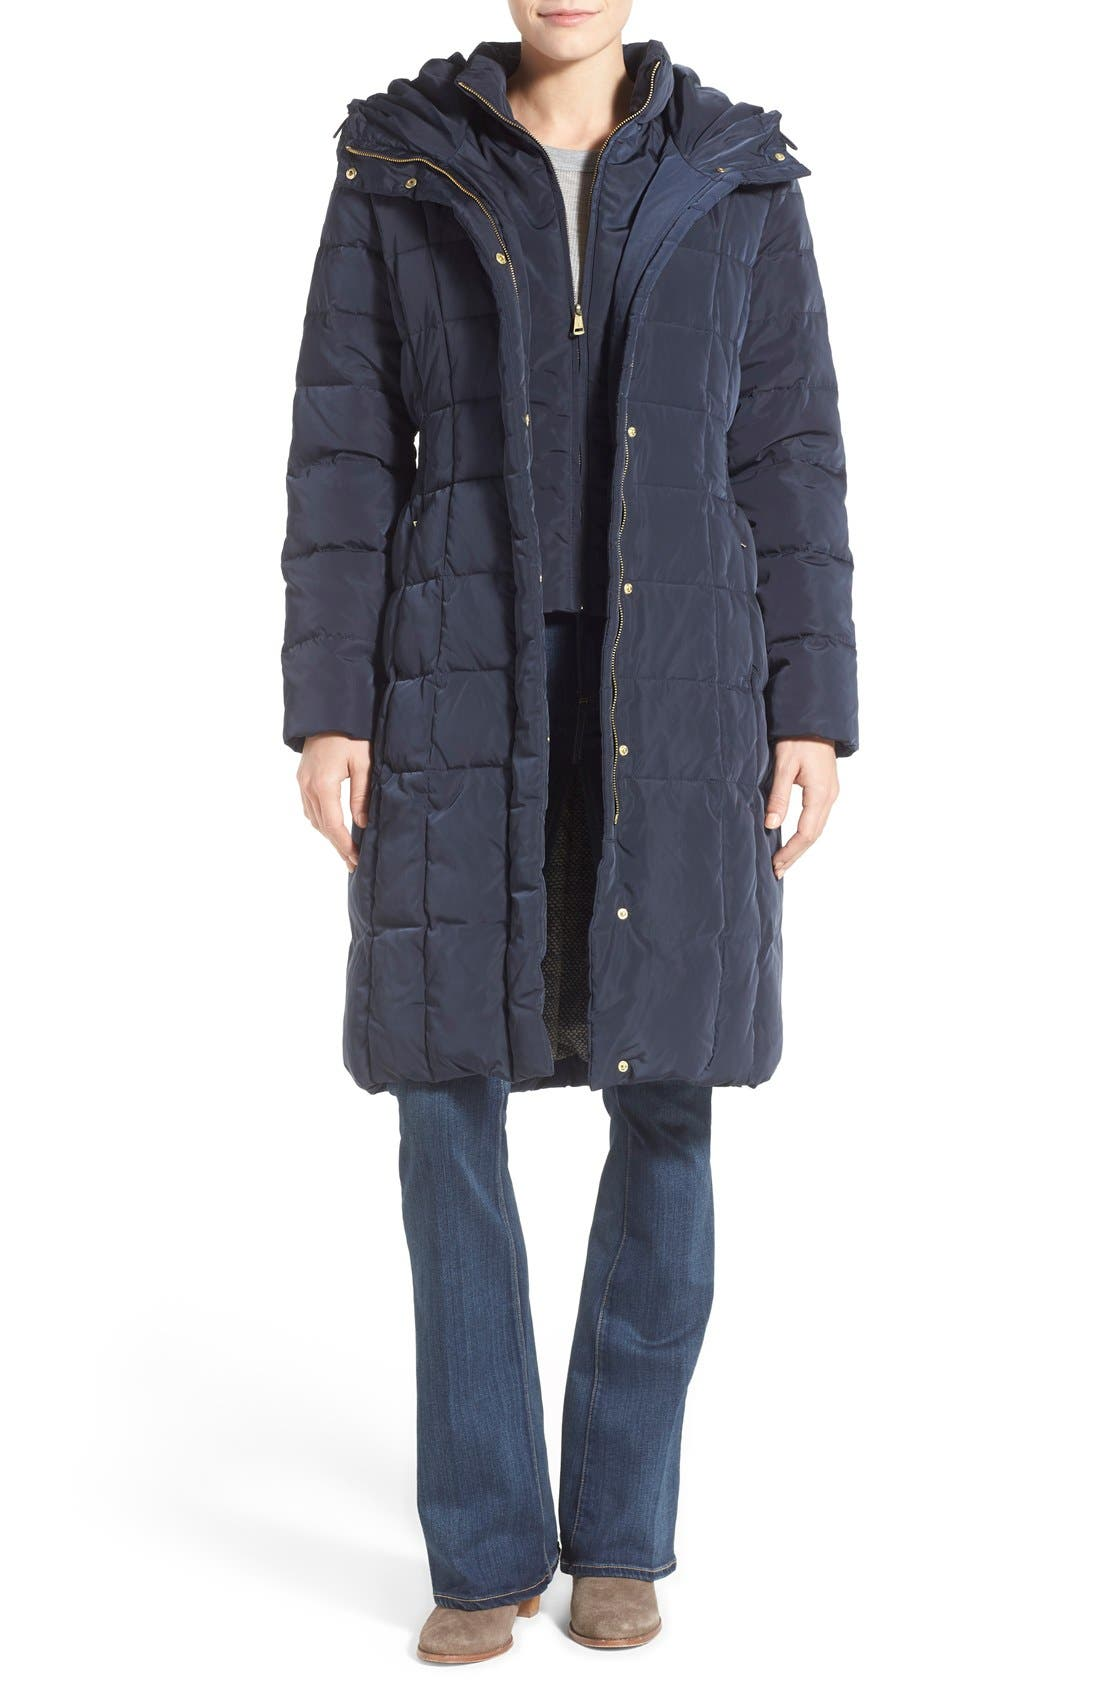 Alternate Image 1 Selected - Cole Haan Bib Insert Down & Feather Fill Coat (Regular & Petite)